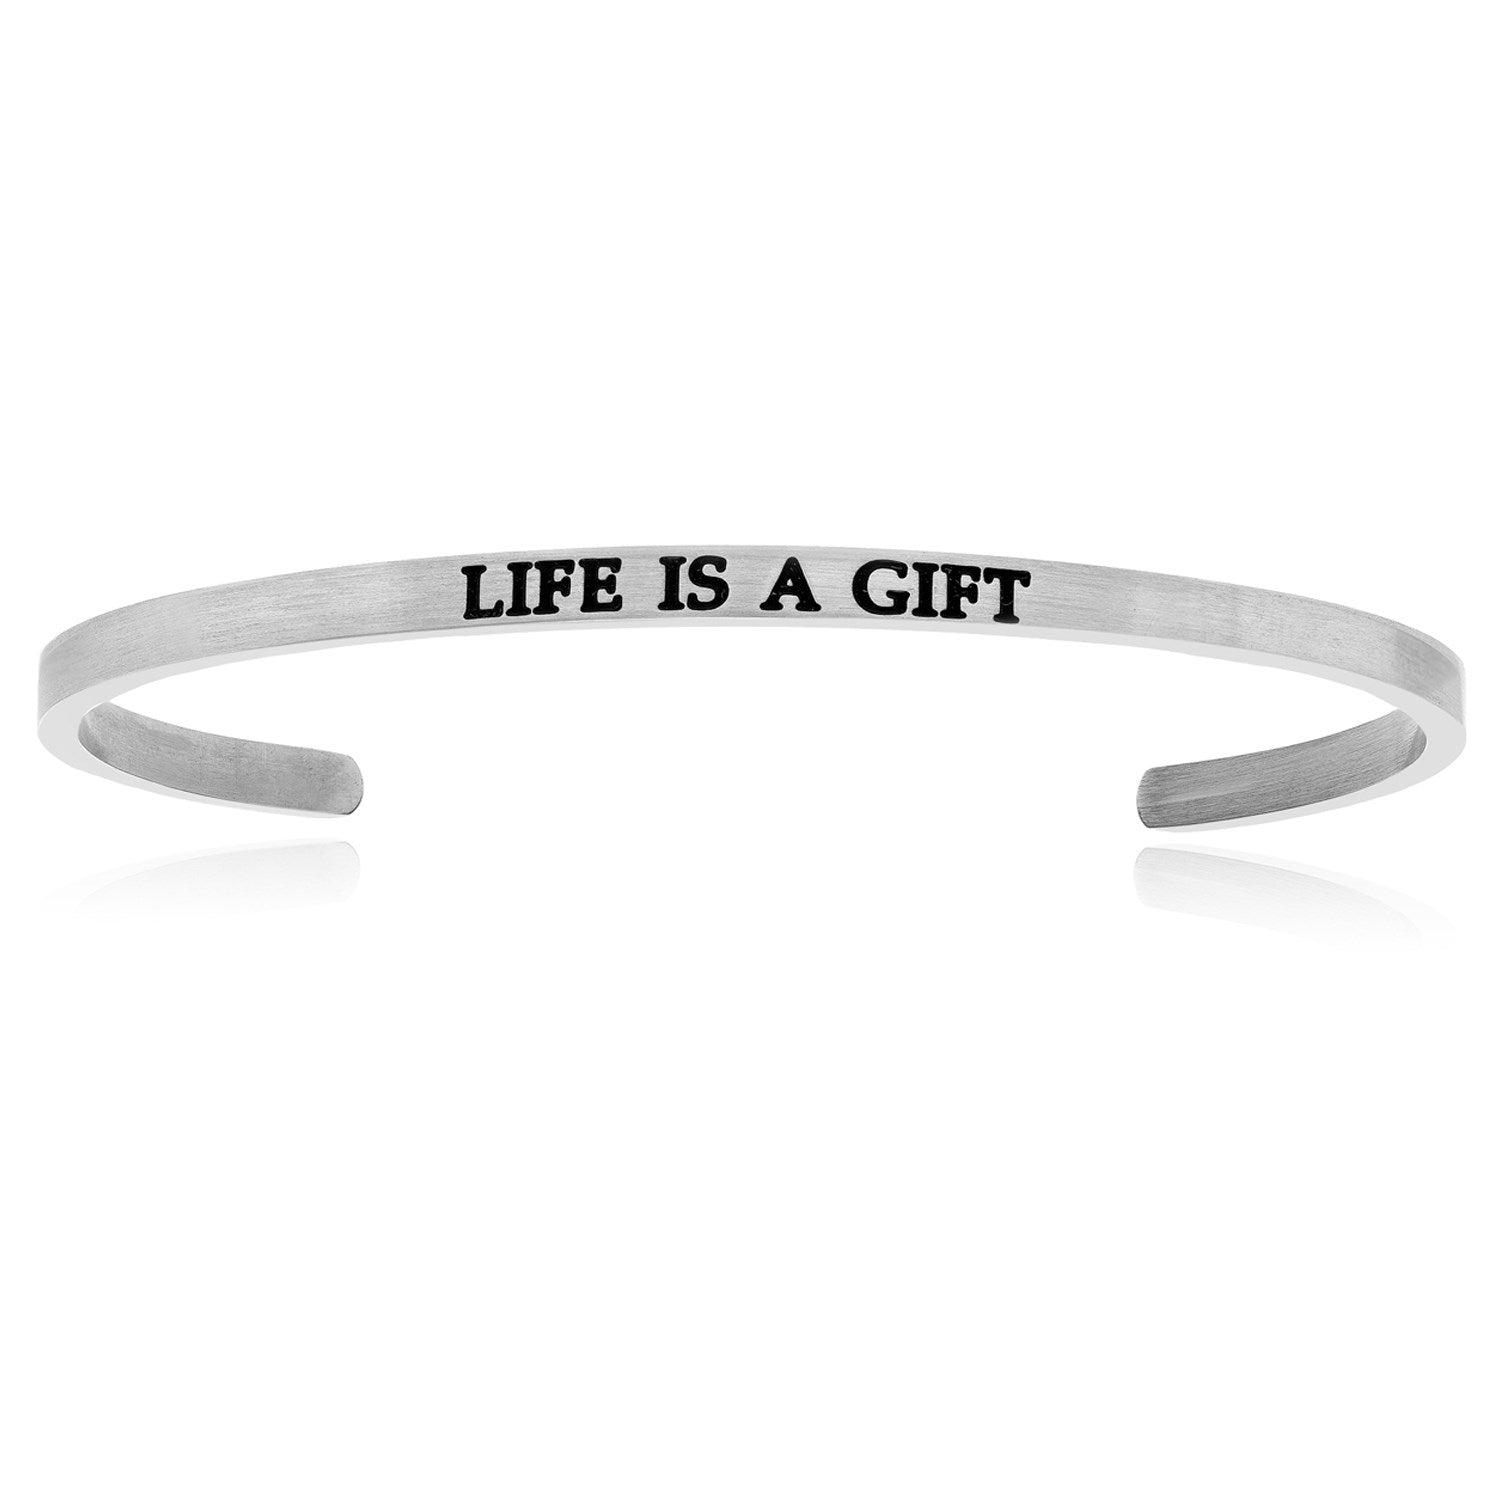 Stainless Steel Life Is A Gift Cuff Bracelet